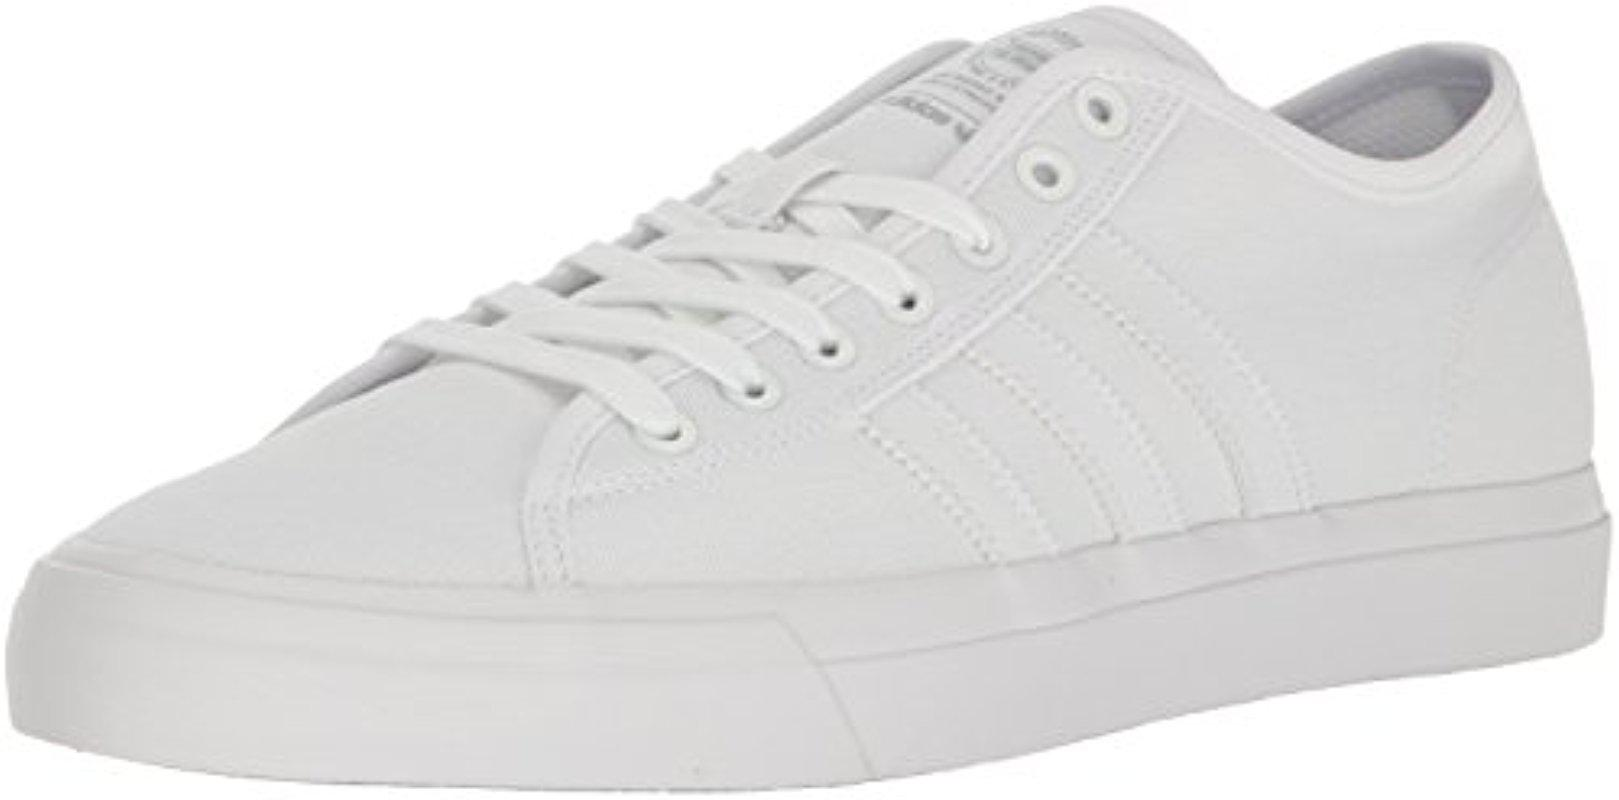 adidas Originals Mens Matchcourt RX Shoes White/White/White 7.5 M US